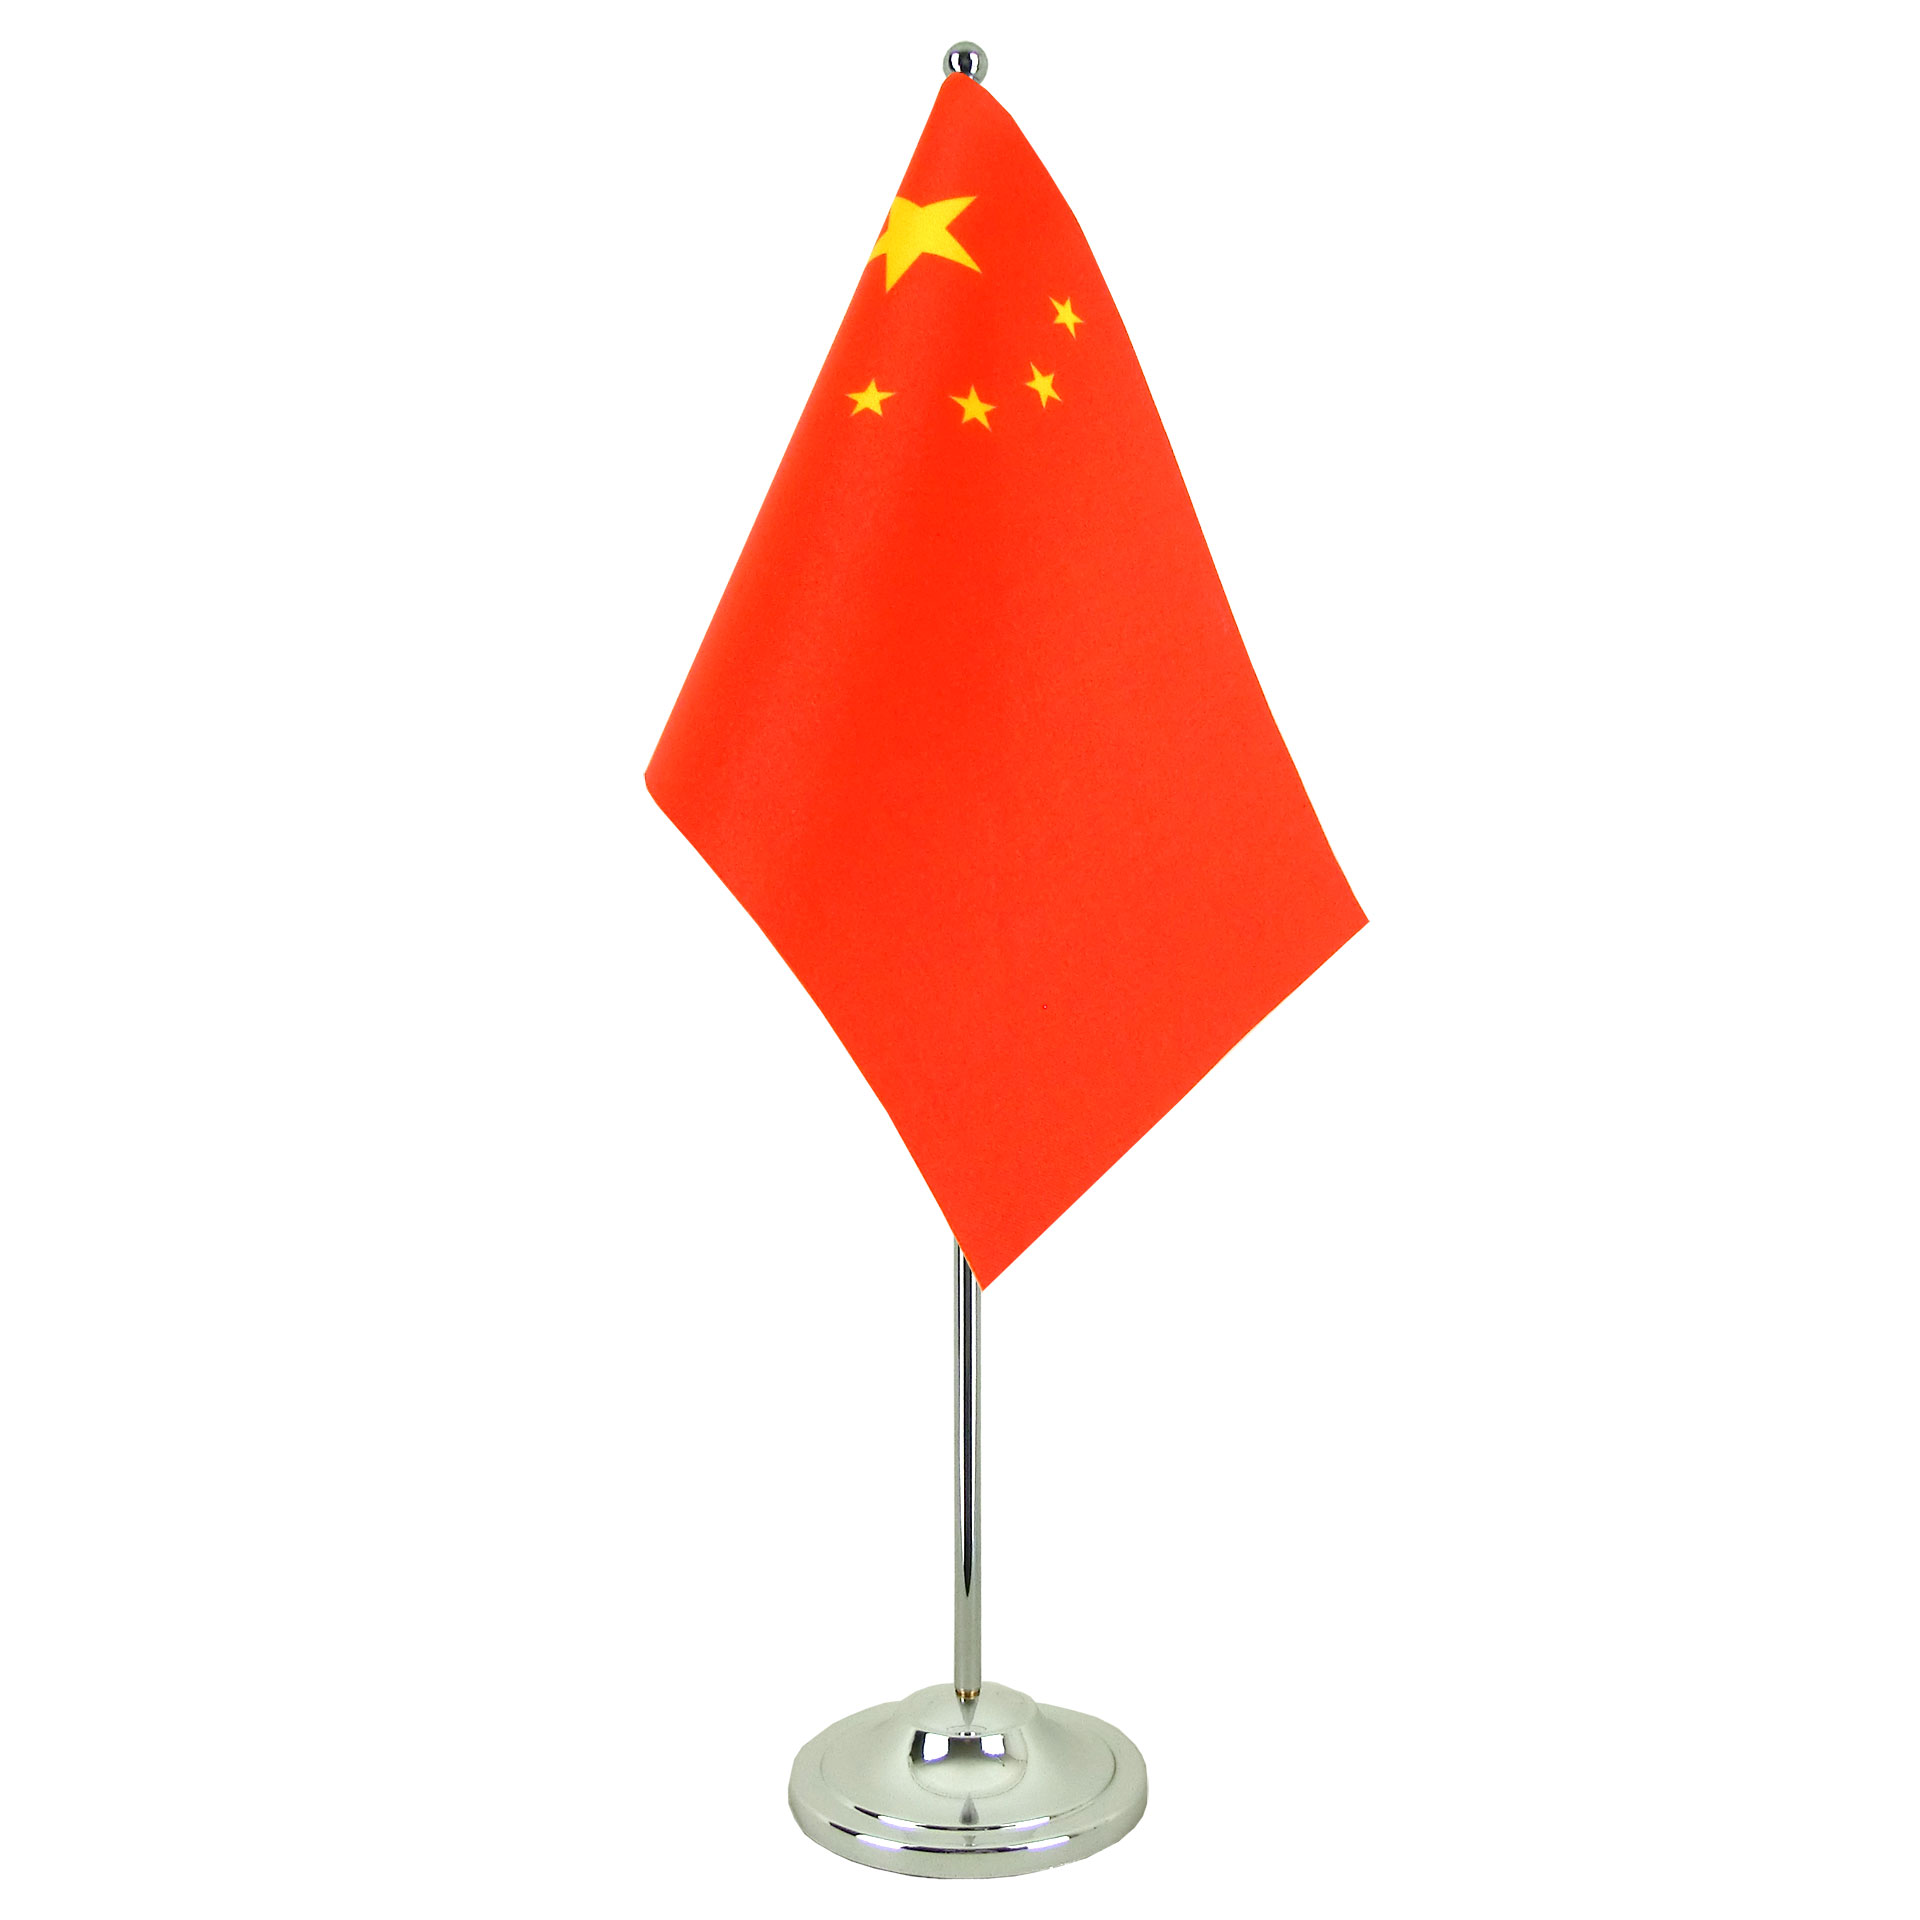 Drapeau De Chine drapeau de table prestige chine chromé - monsieur-drapeaux